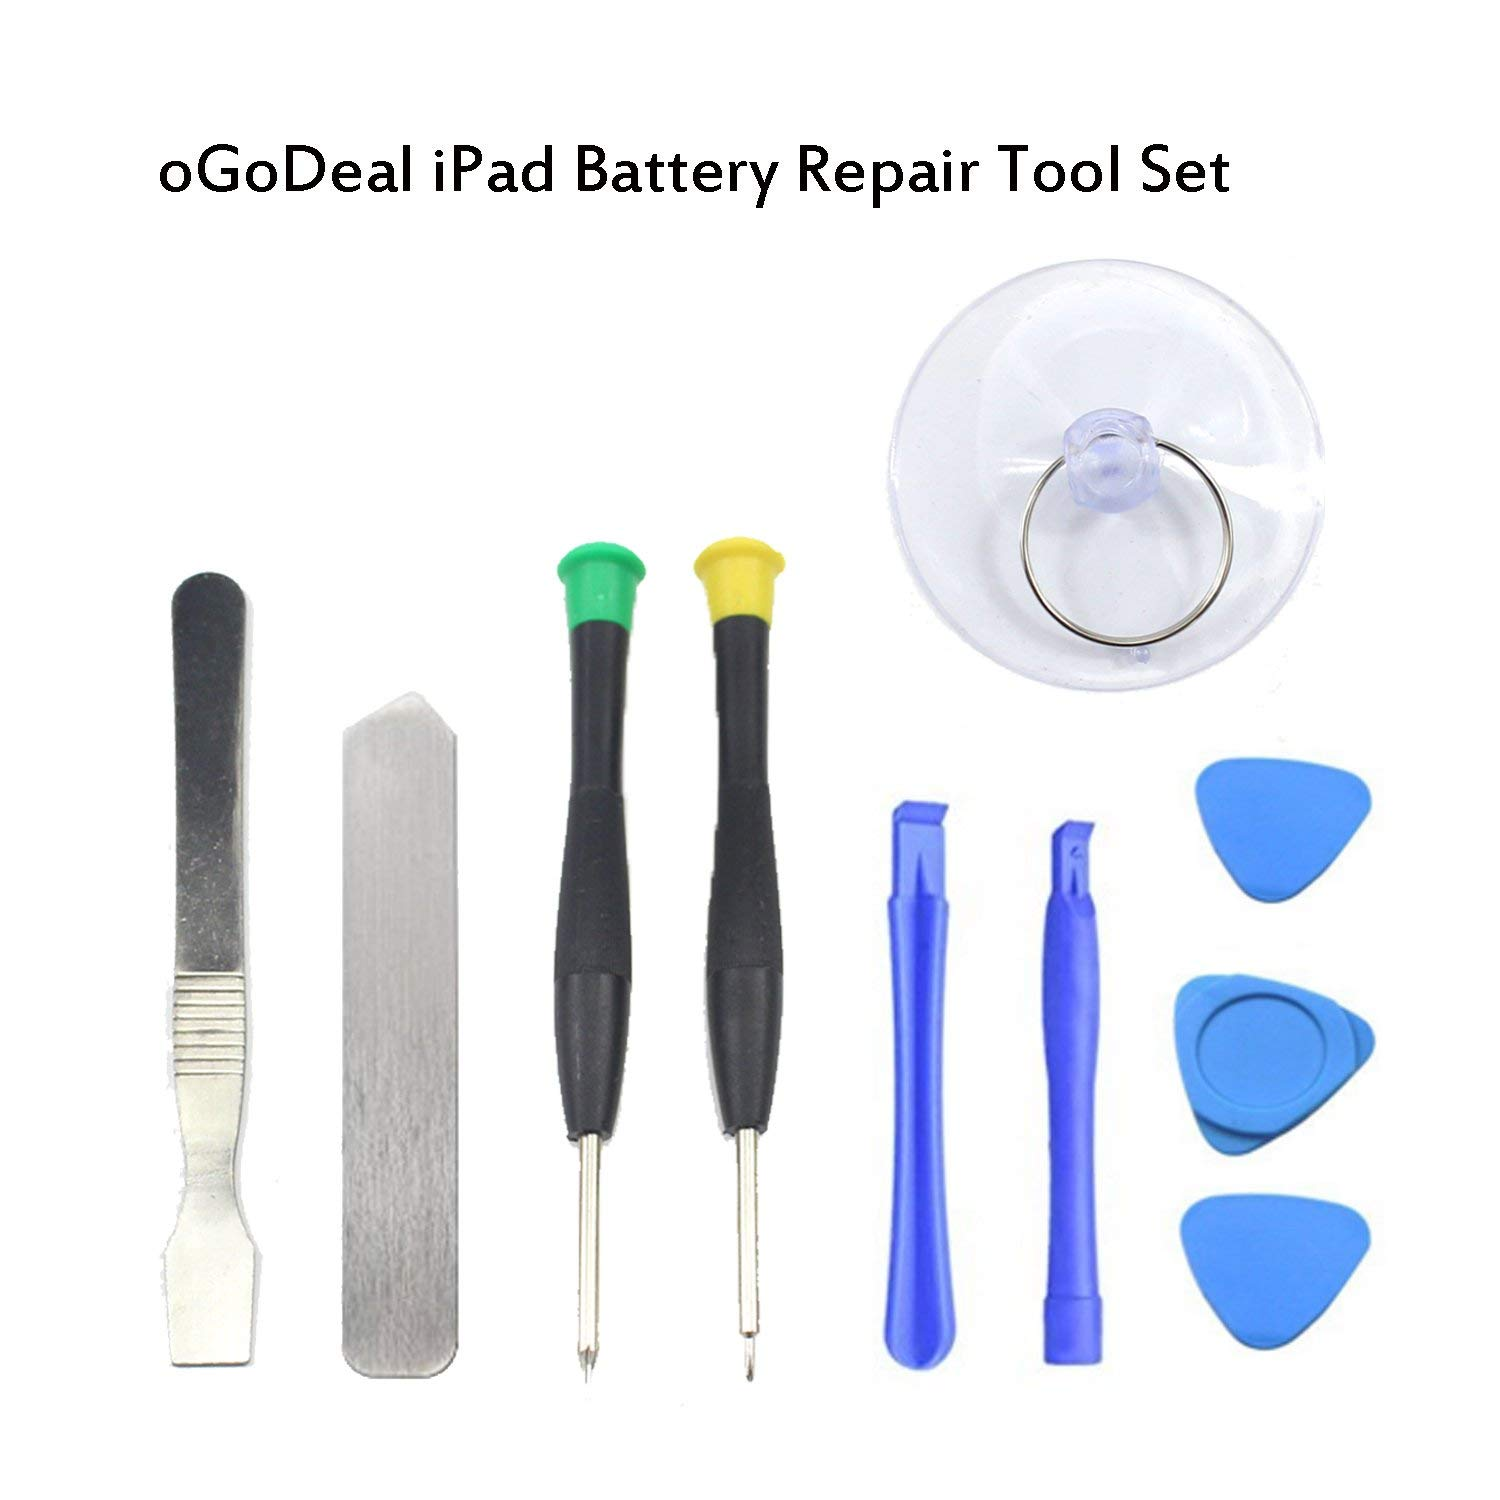 oGoDeal Battery Compatible for iPad 3//iPad 4 A1389,A1416,A1430,A403,A1458,A1459,A1460 with Repair Tools 1 Year Warranty